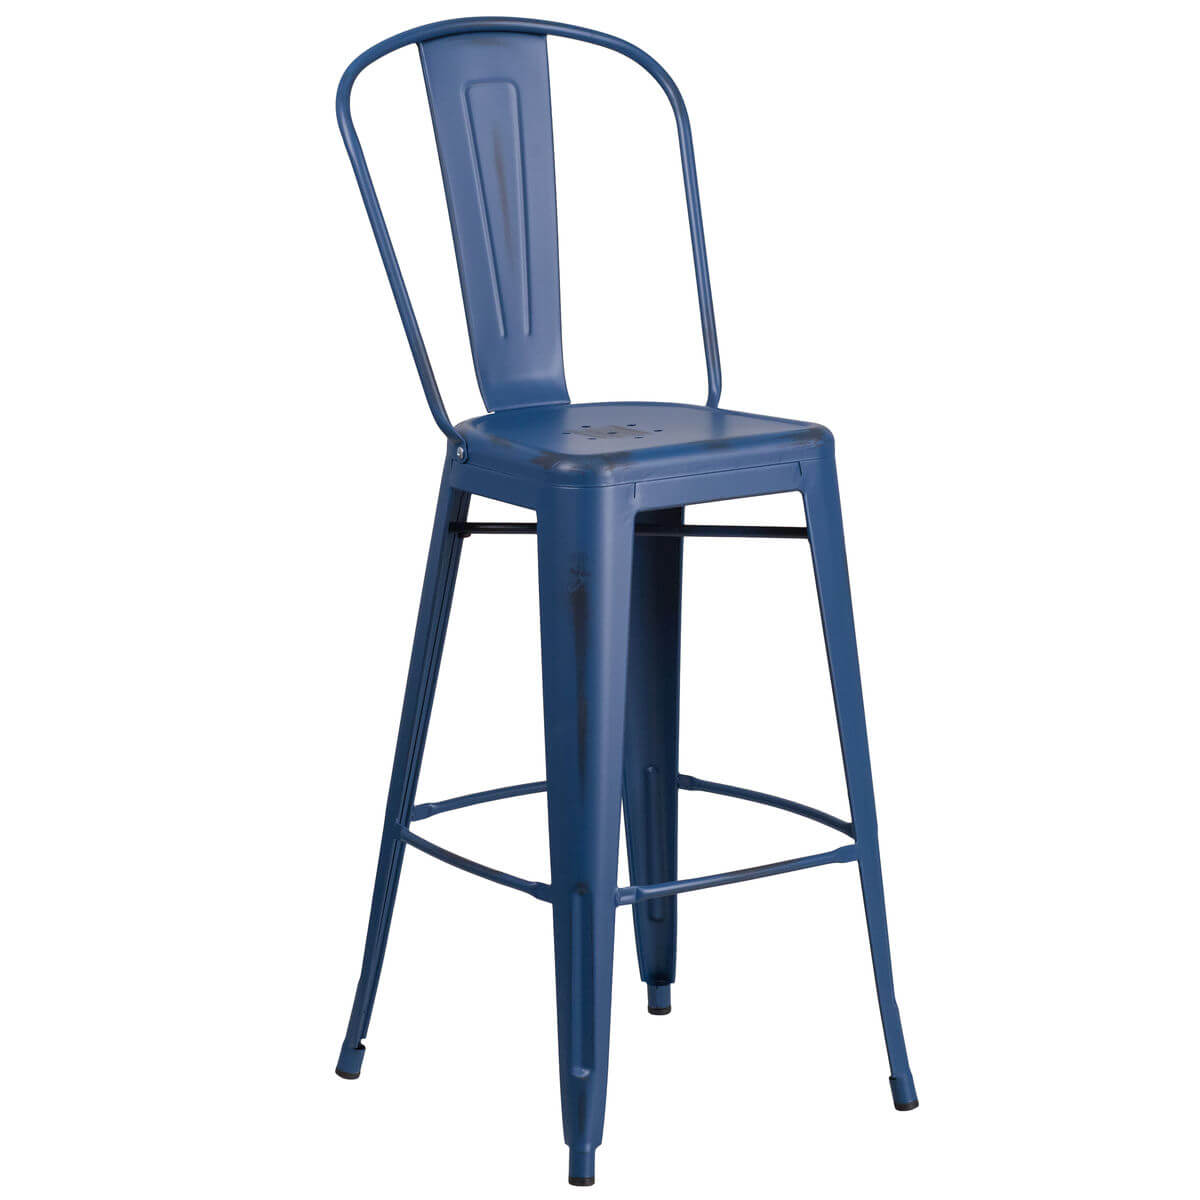 Distressed Dark Blue Bistro Style Metal Bar Stool